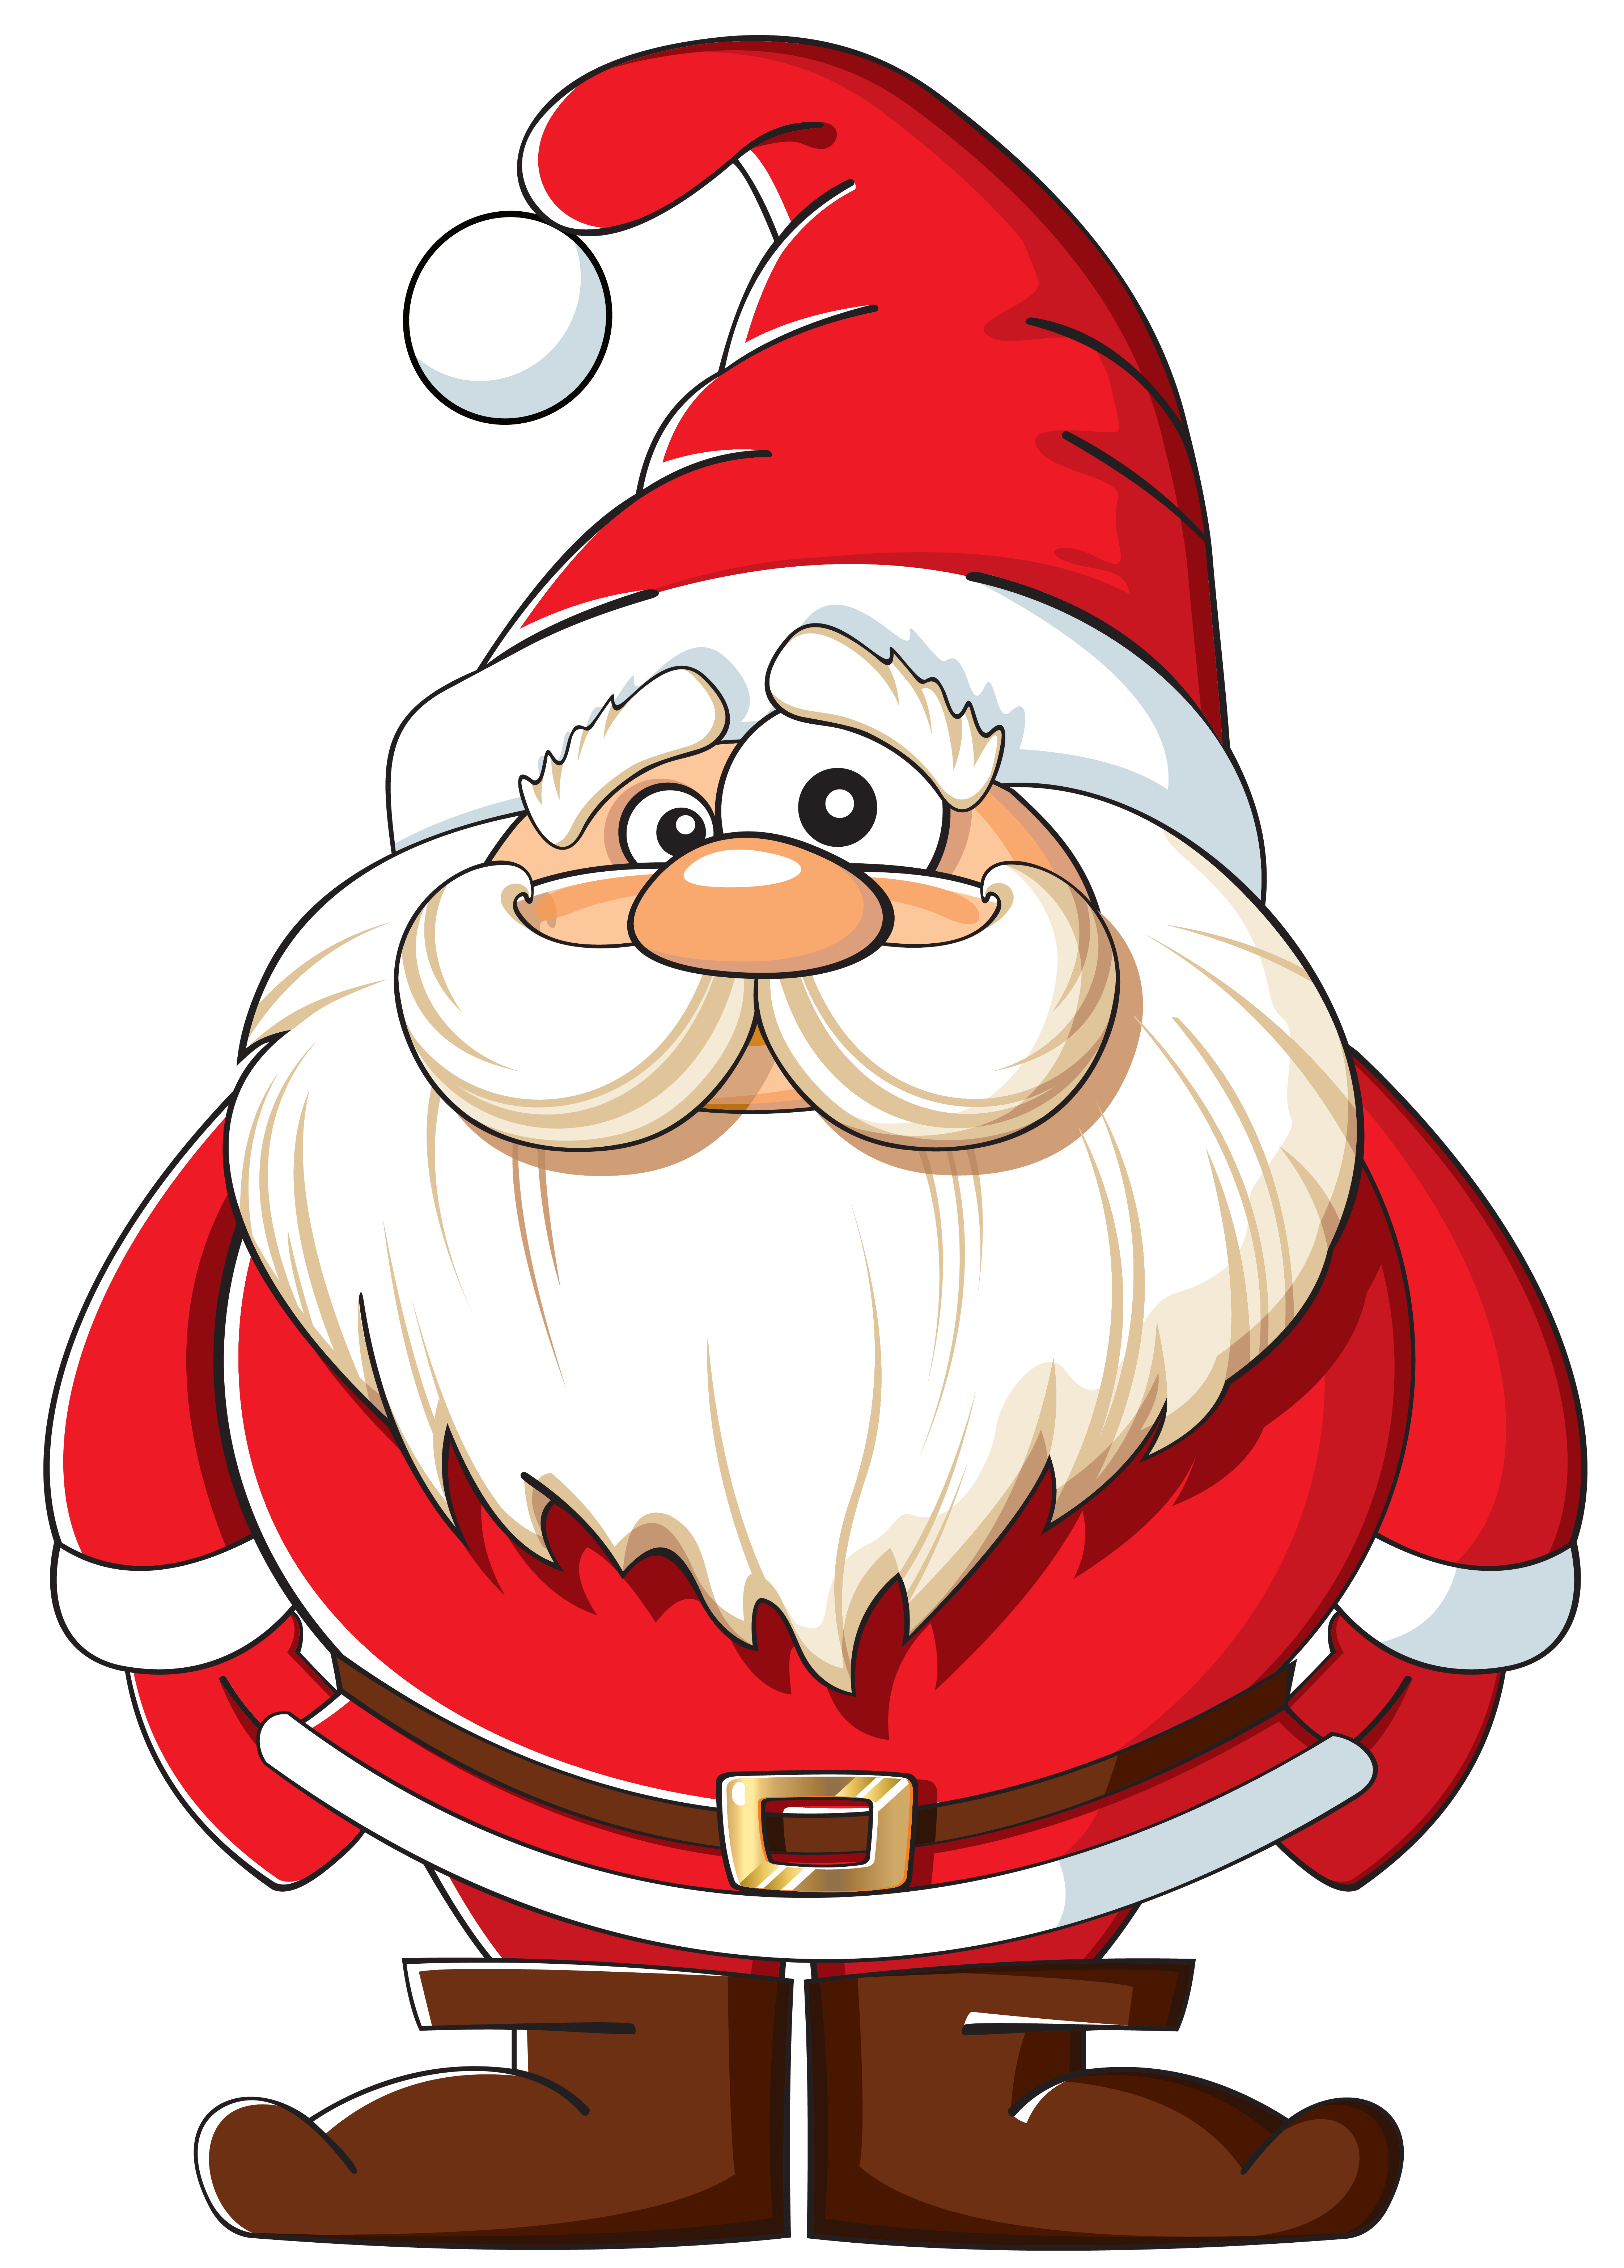 Santa clipart summer, Santa summer Transparent FREE for.